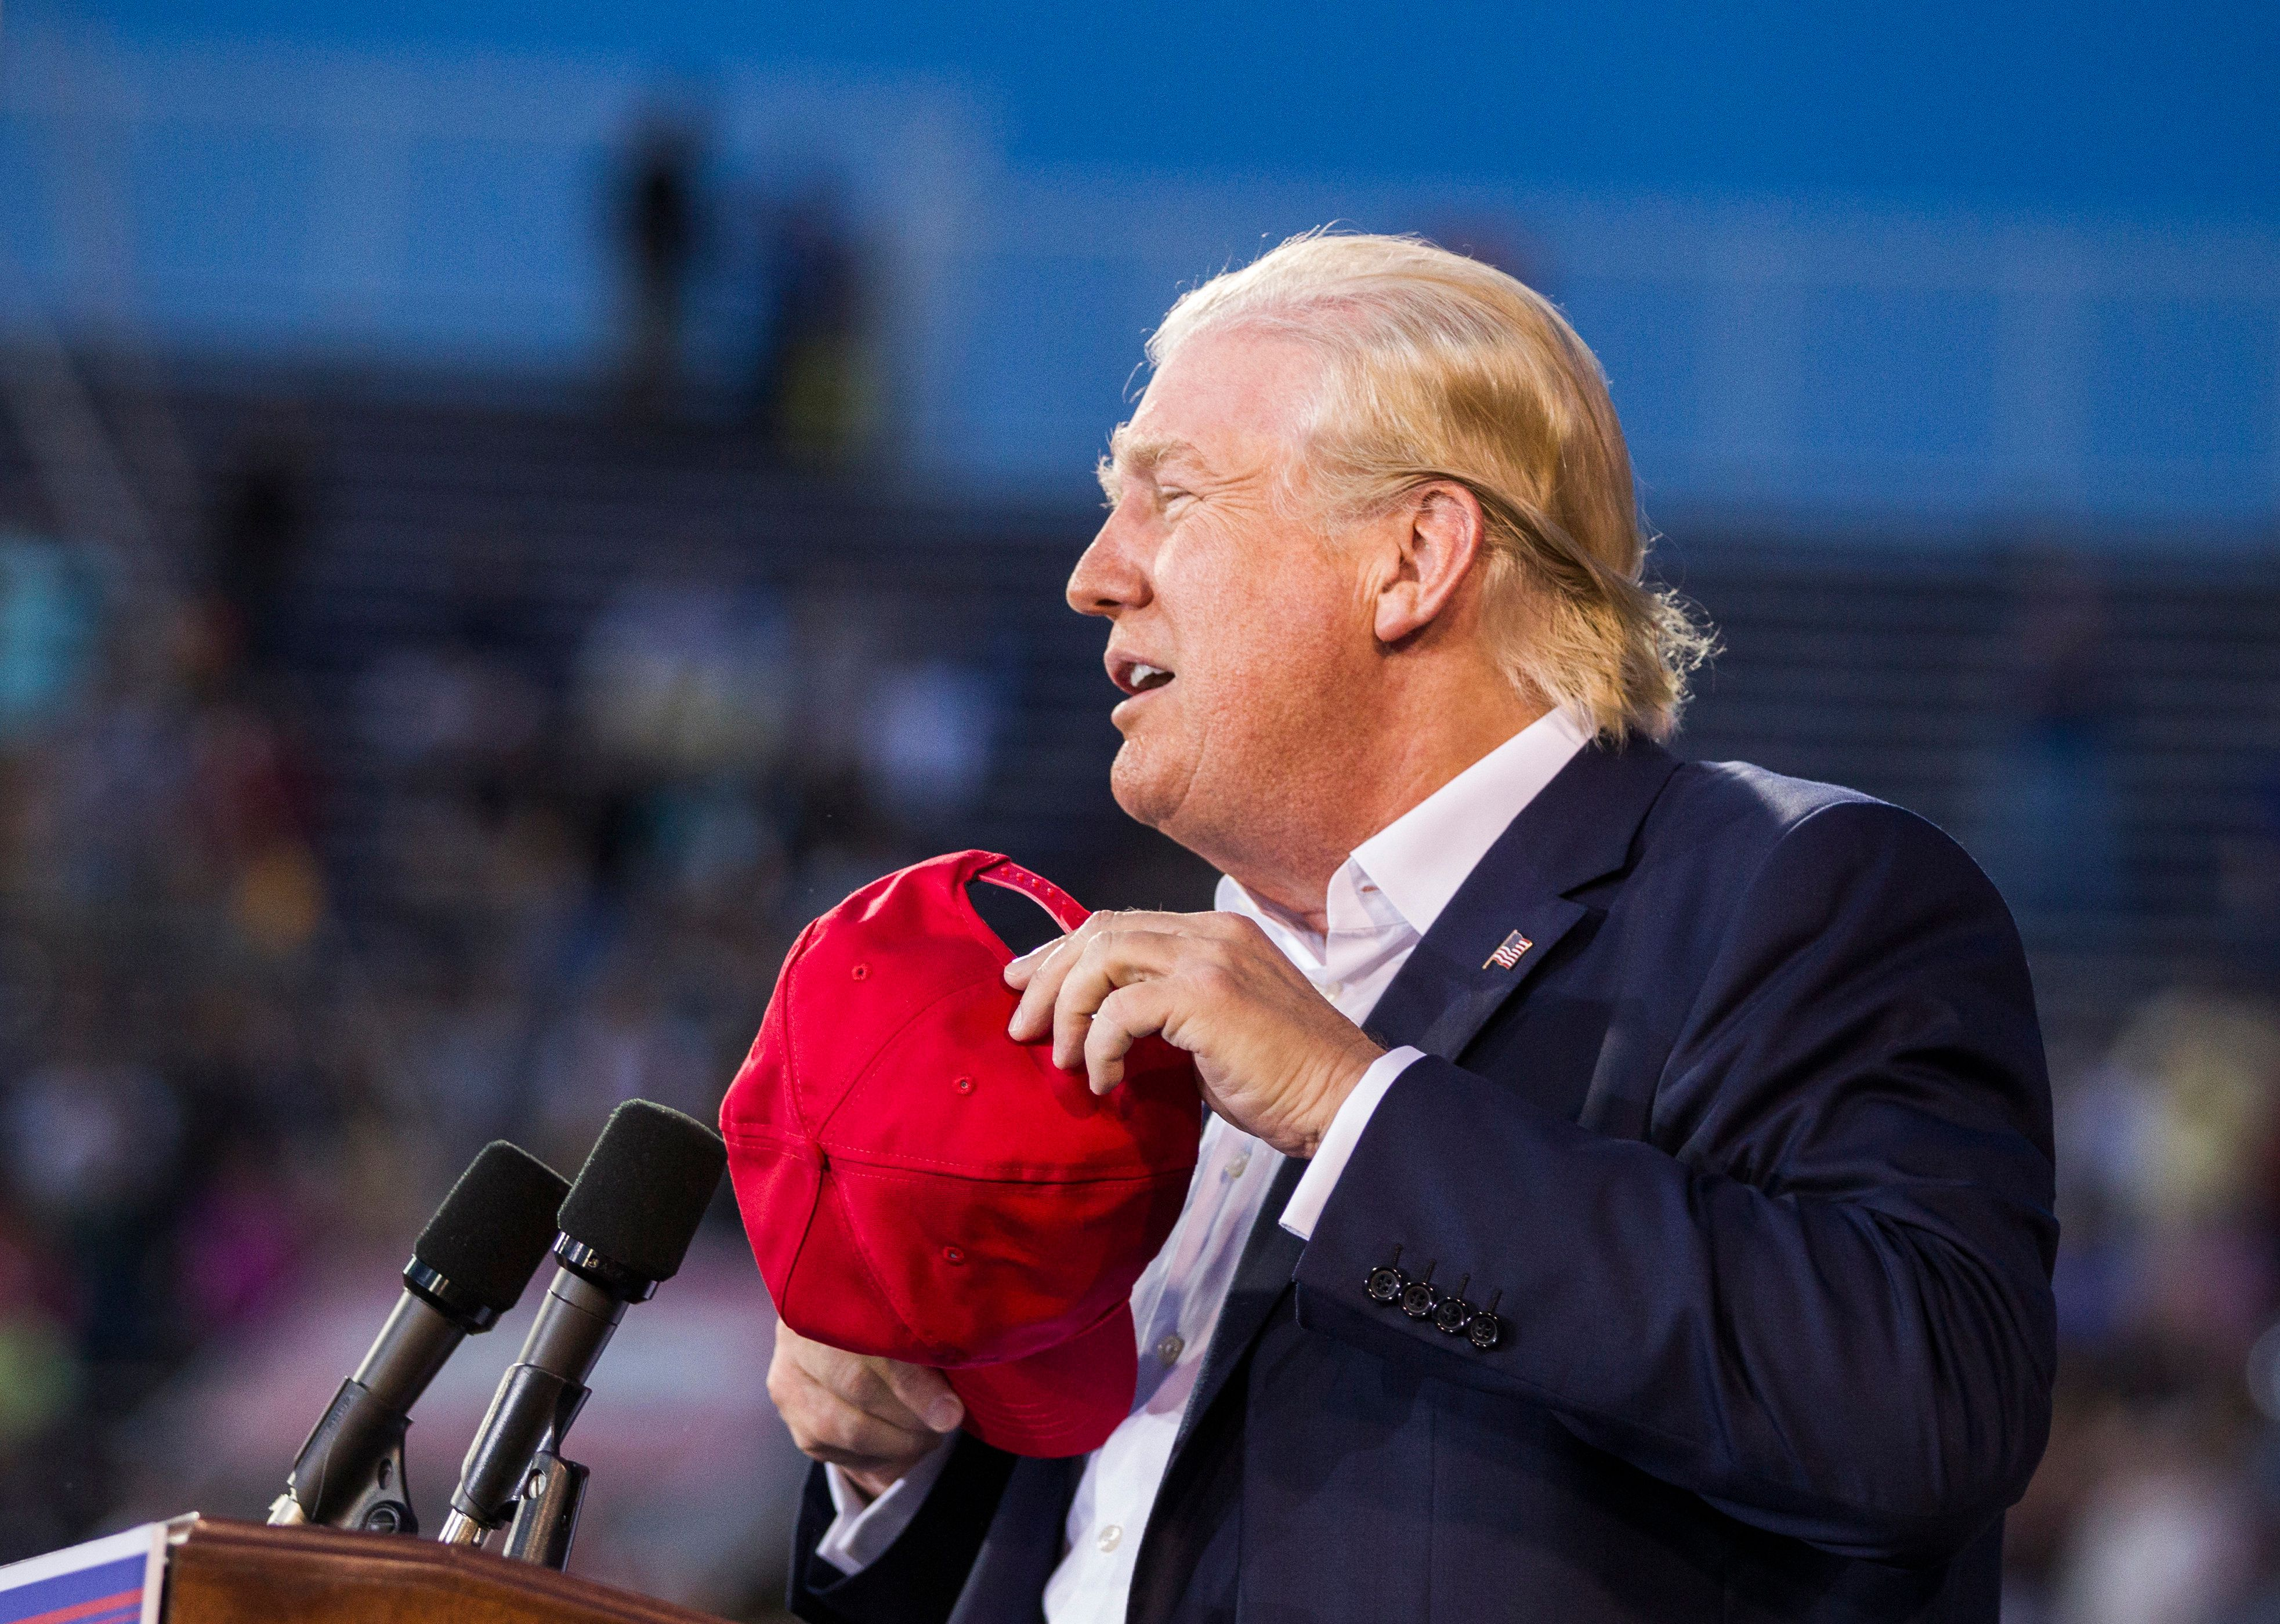 MOBILE, AL- AUGUST 21: U.S. Republican presidential candidate Donald Trump removes his hat to show that his hair is real during a political rally at Ladd-Peebles Stadium on August 21, 2015 in Mobile, Alabama. The Donald Trump campaign moved tonight's rally to a larger stadium to accommodate demand. (Photo by Mark Wallheiser/Getty Images)